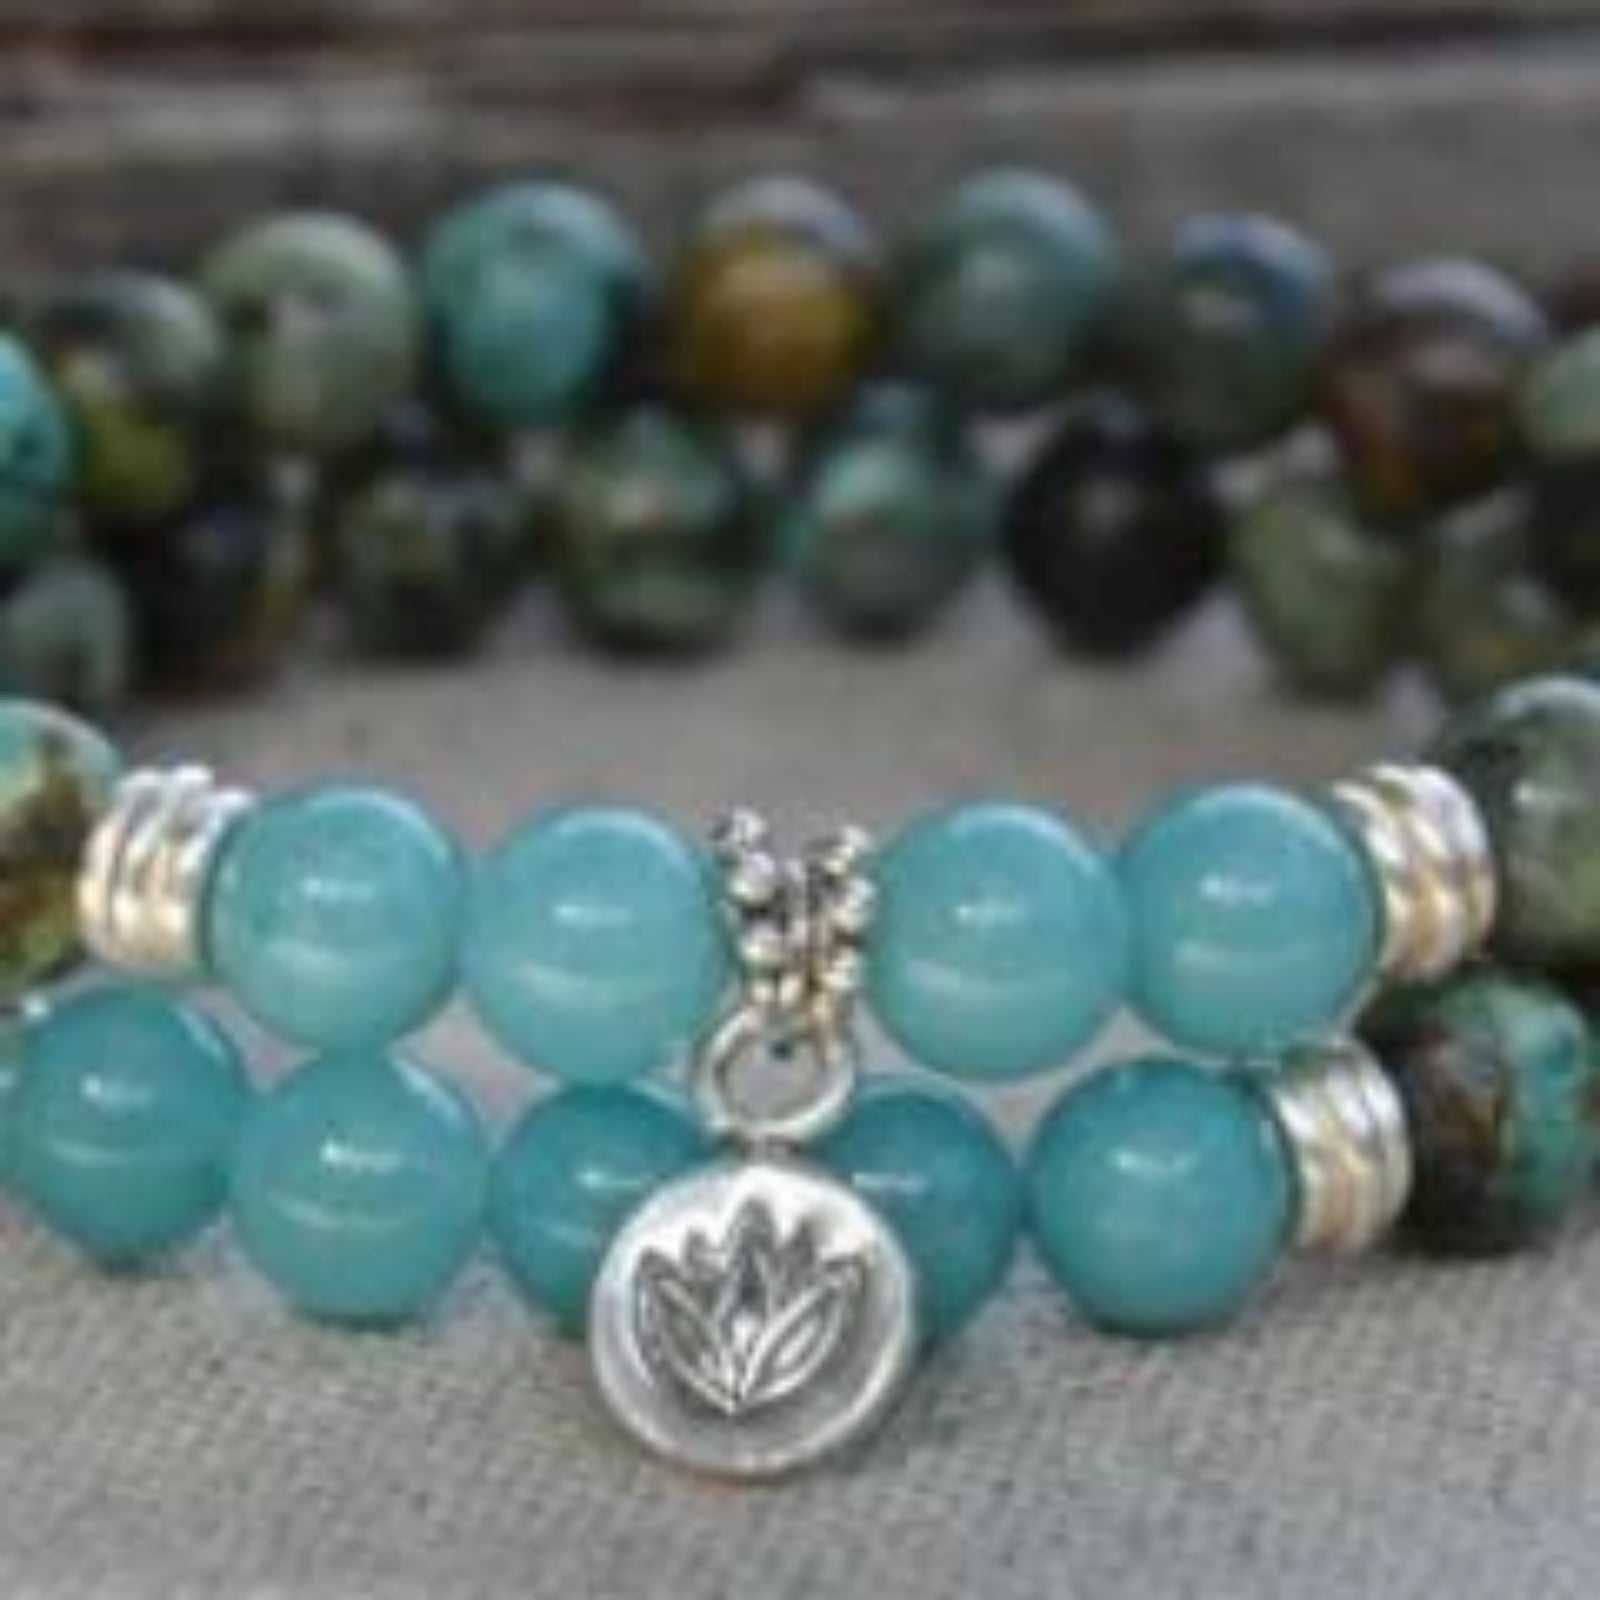 African turquoise stacking bracelets with sterling silver lotus african turquoise stacking bracelets with sterling silver lotus flower charm mightylinksfo